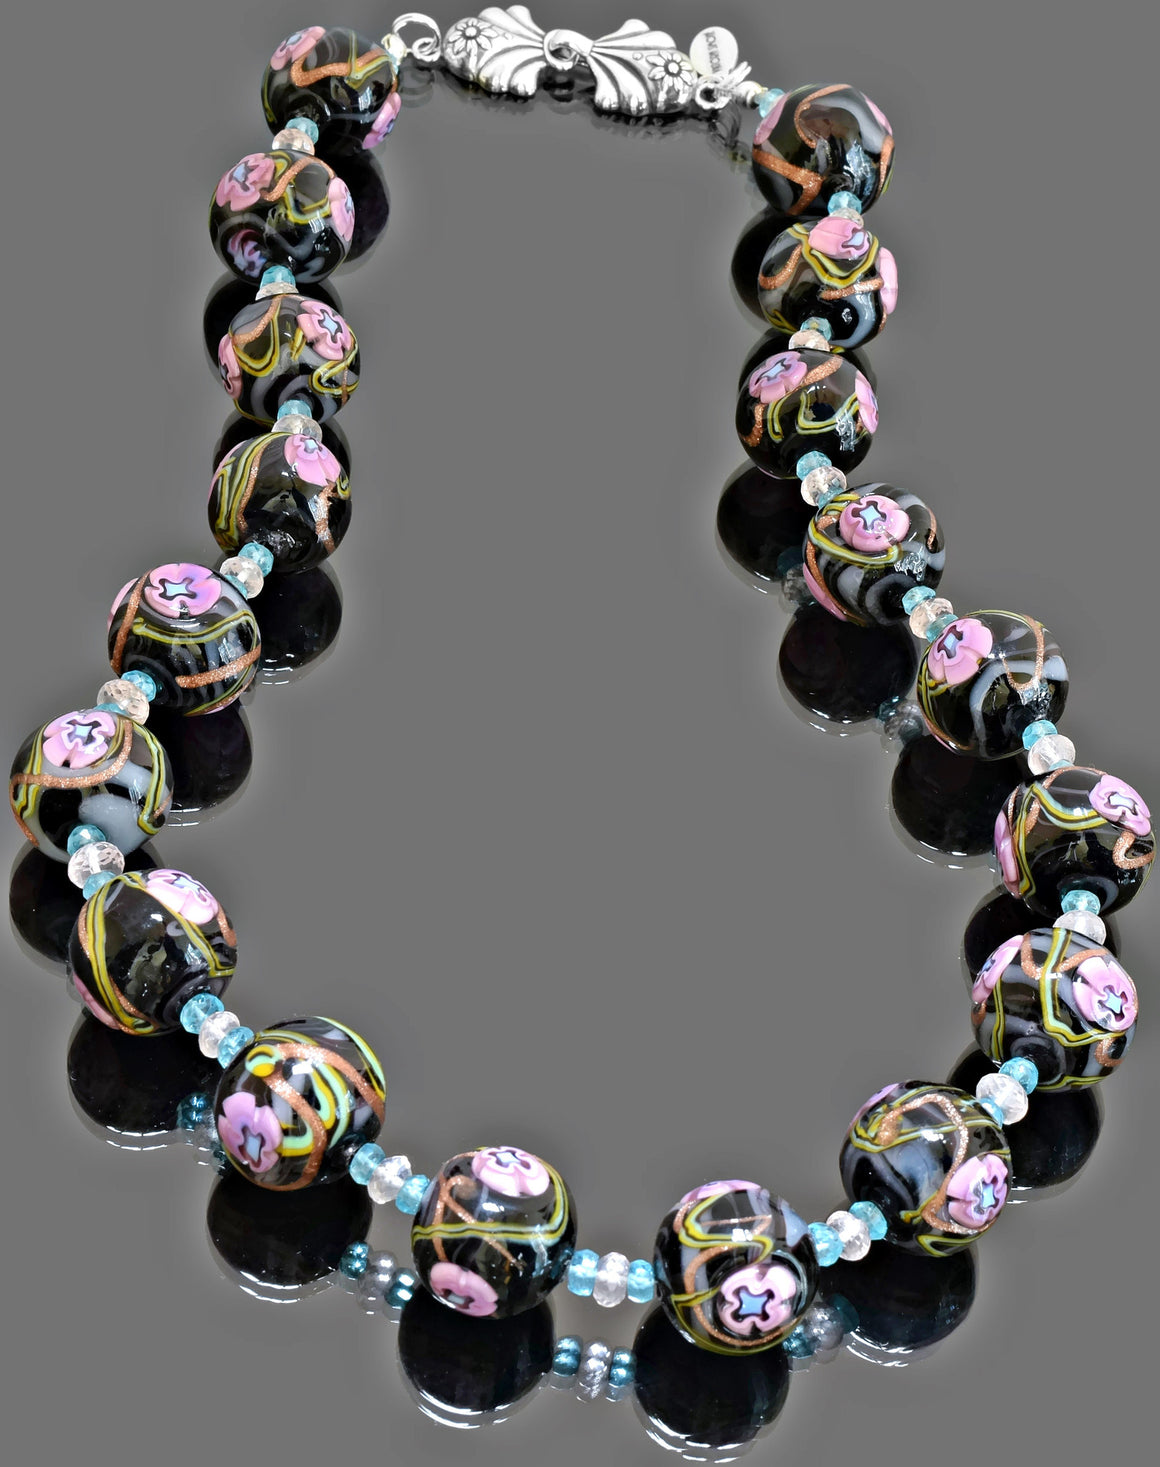 Gemma Collection - Artisan Beaded Necklace 21 - Kollekcio  - 1